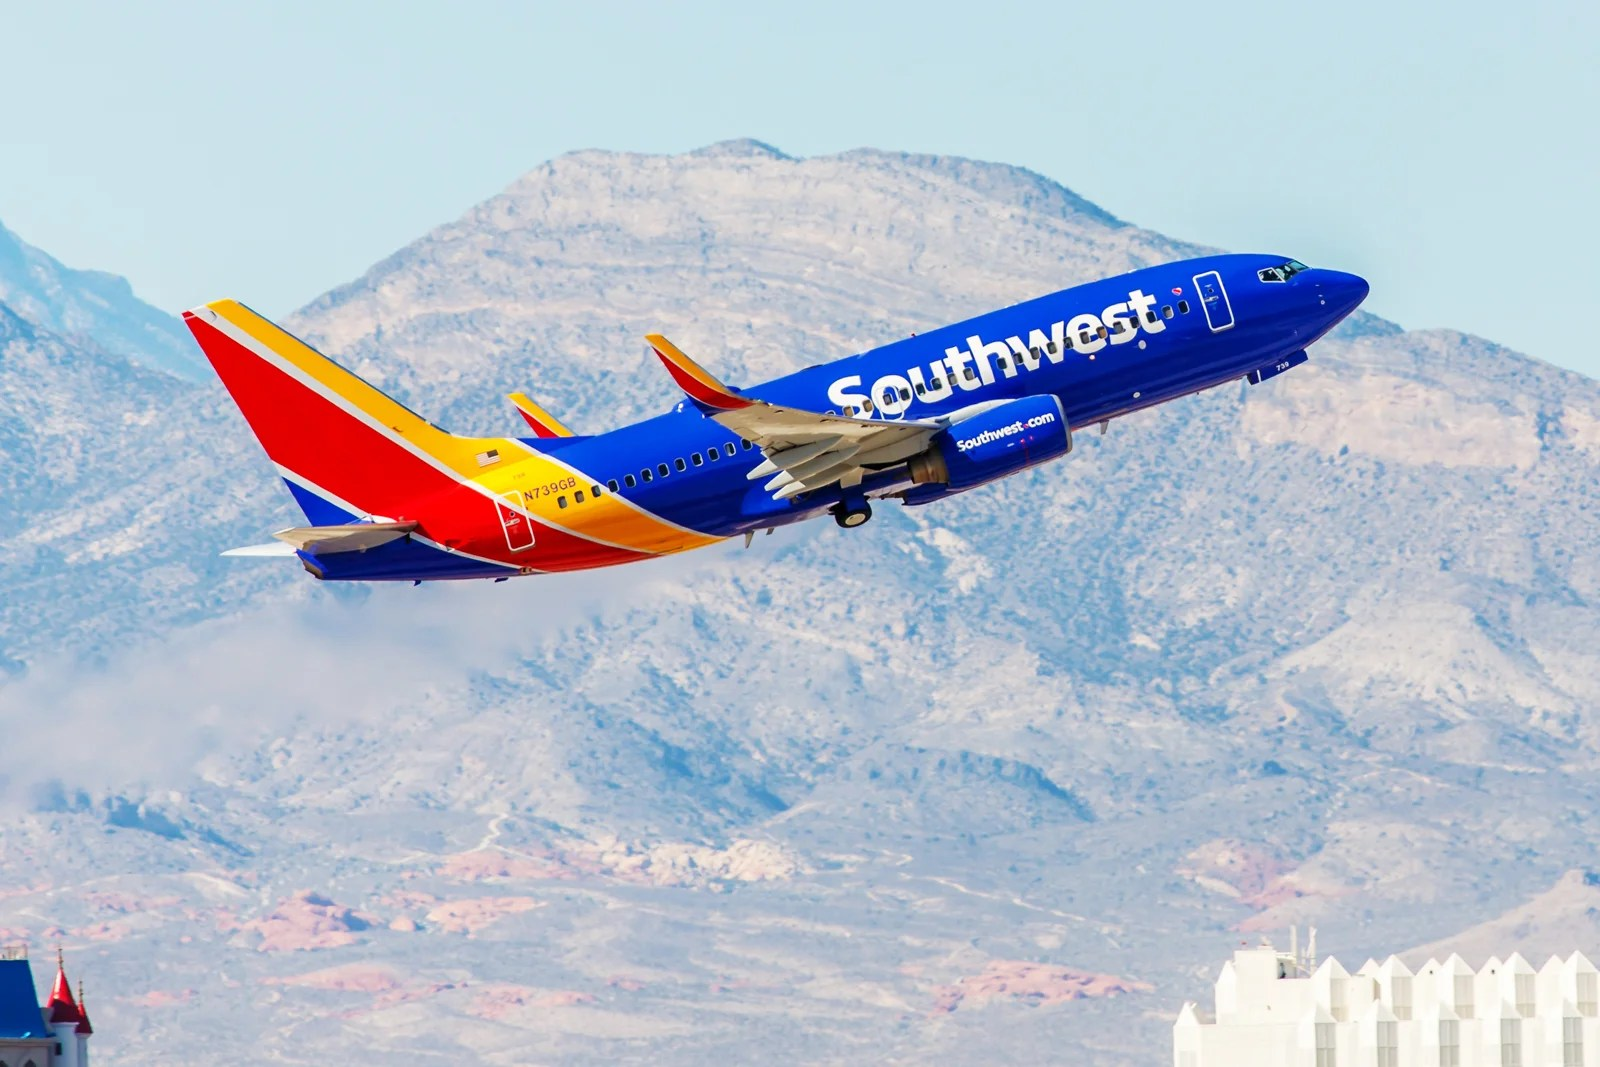 New Offer: Earn Up to 30,000 Rapid Rewards Points Through Southwest-Turo Partnership